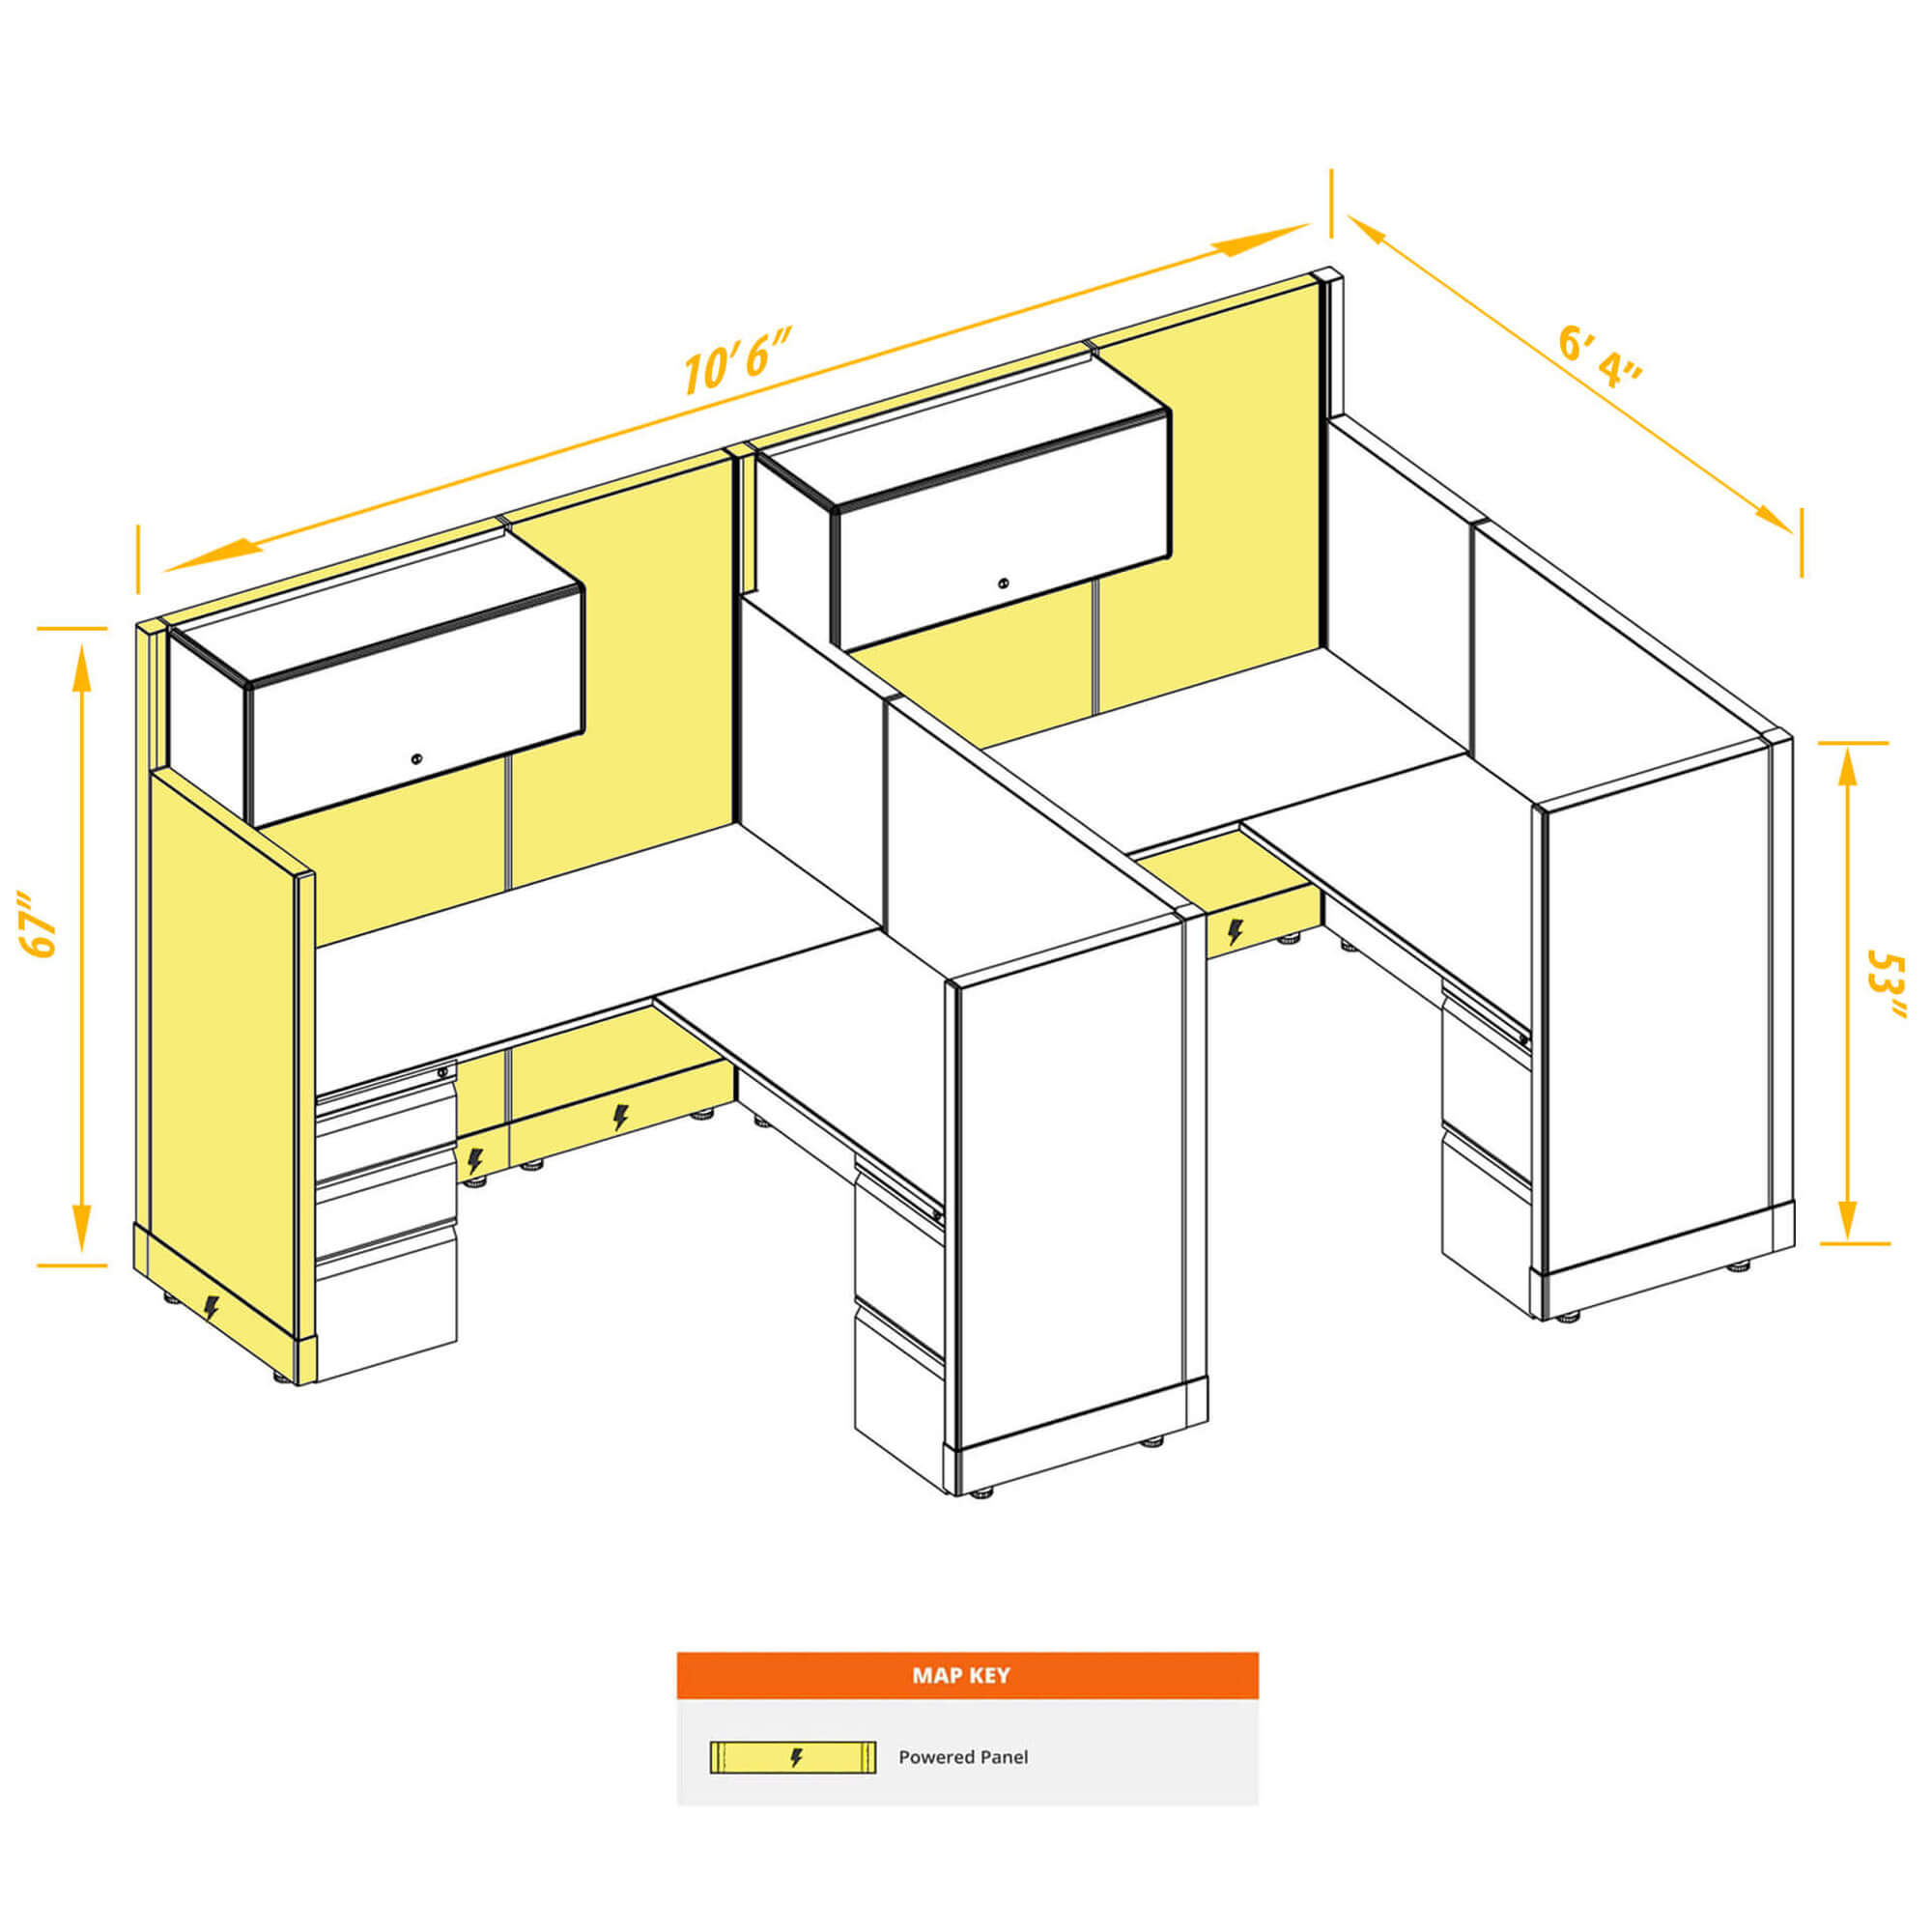 Modular furniture CUB 2 53 67 P 56 PSO